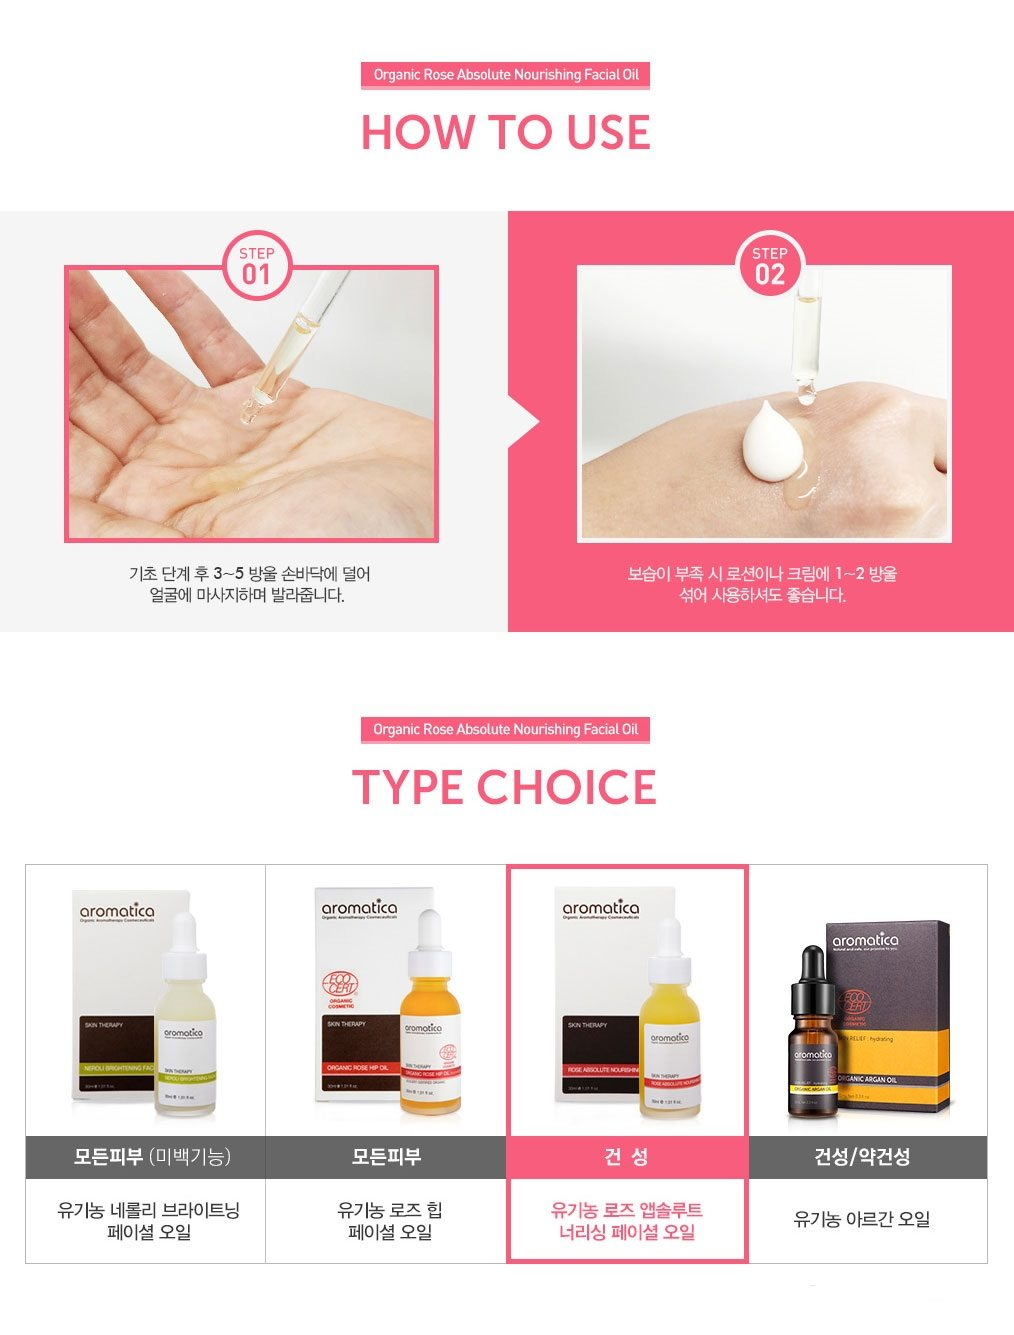 Aromatica Organic Rose Absolute Nourishing Facial Oil korean cosmetic skincare product online shop malaysia china japan4